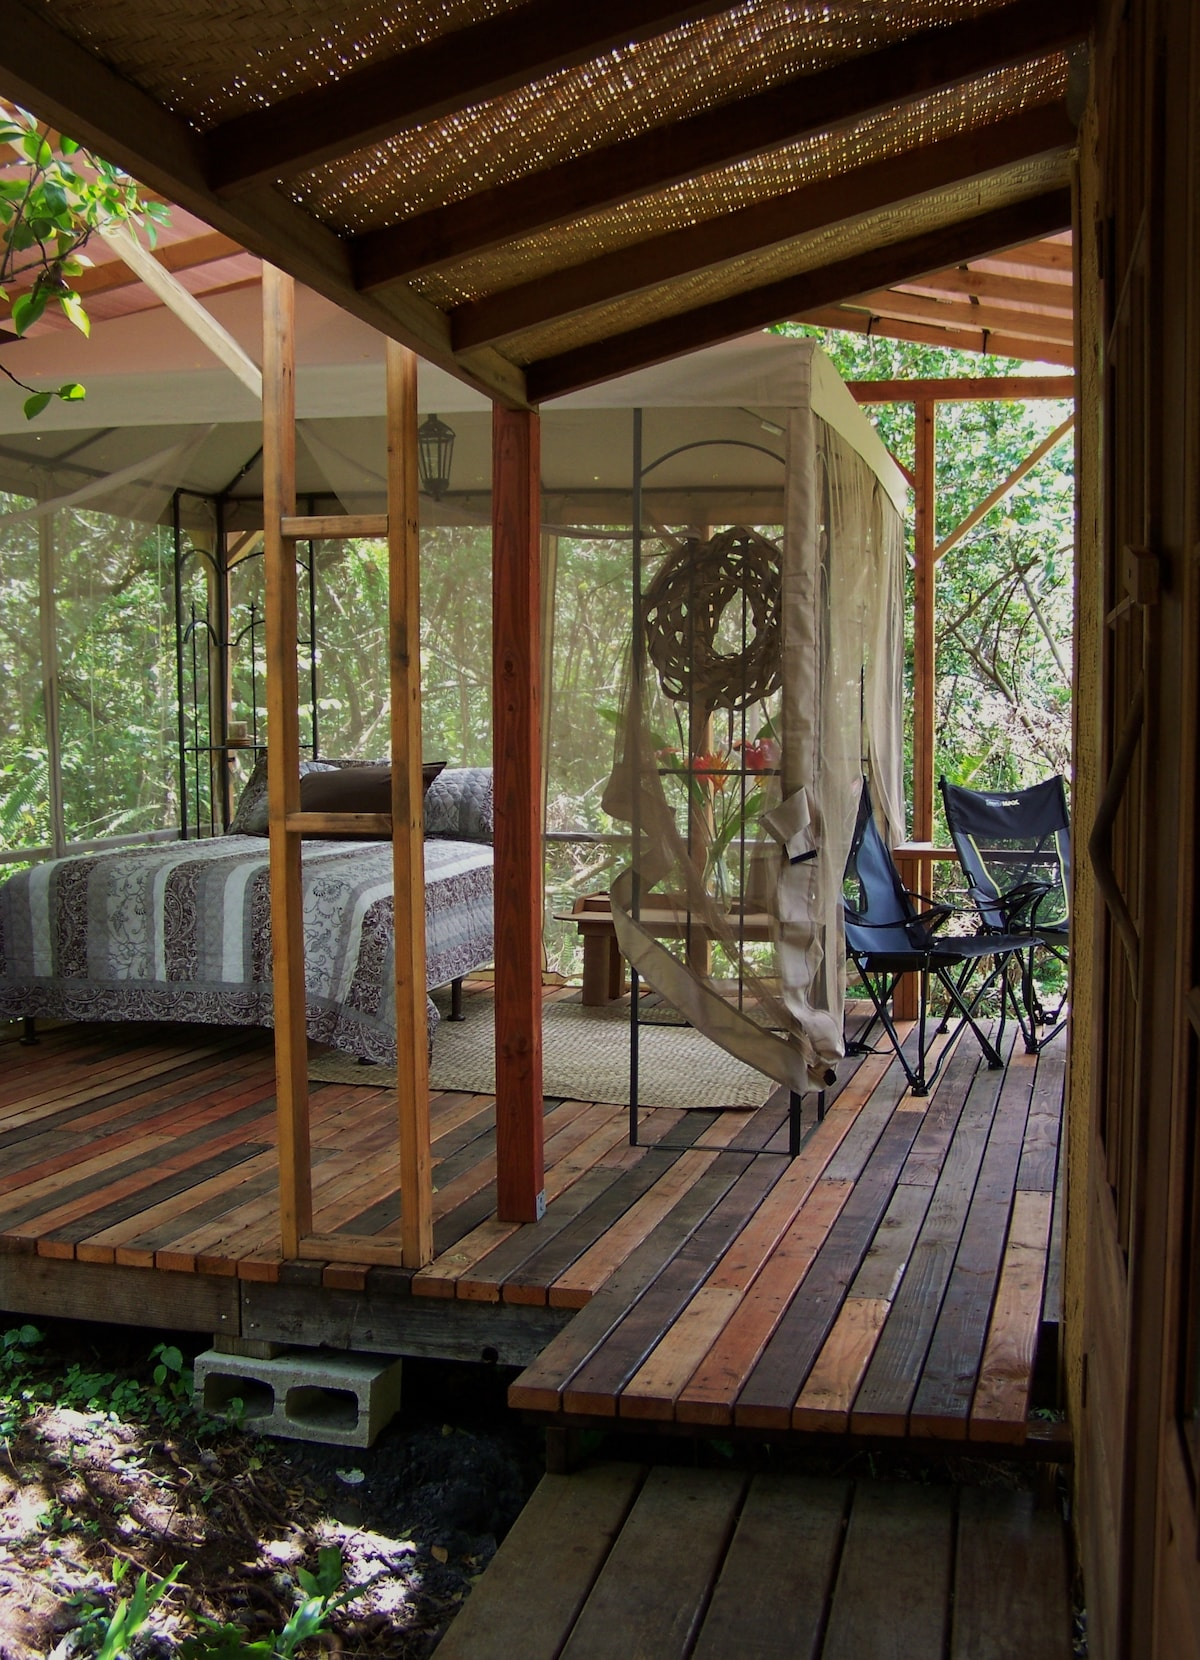 The Peaceful Dragonfly Cabin.